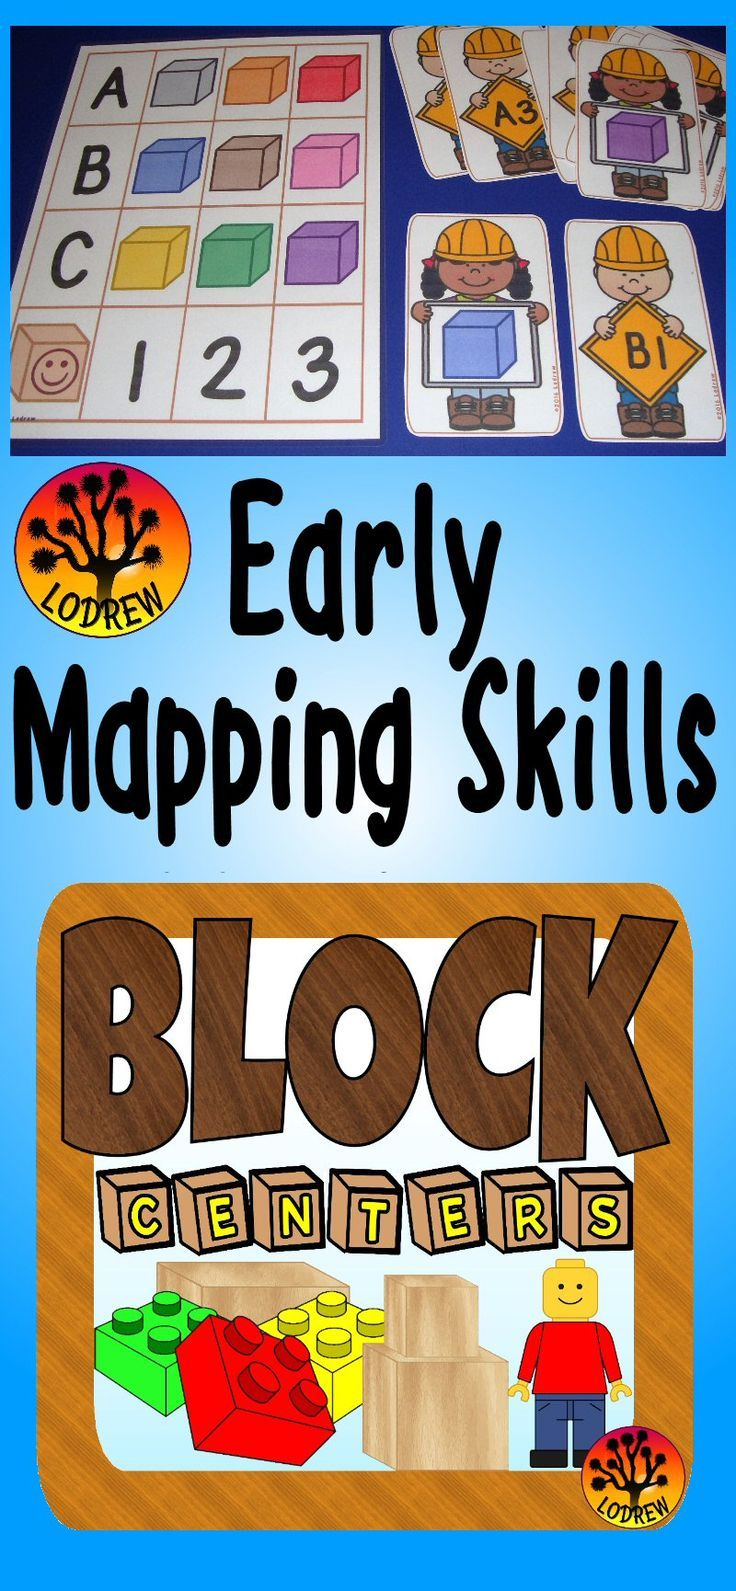 102 pages of block themed centers. Activities include literacy, math, beginning sounds, color words, graphing, mapping, counting, sorting, number sets, letter matching, fine motor, and more. For kindergarten, preschool, SPED, child care, homeschool, or any early childhood setting.